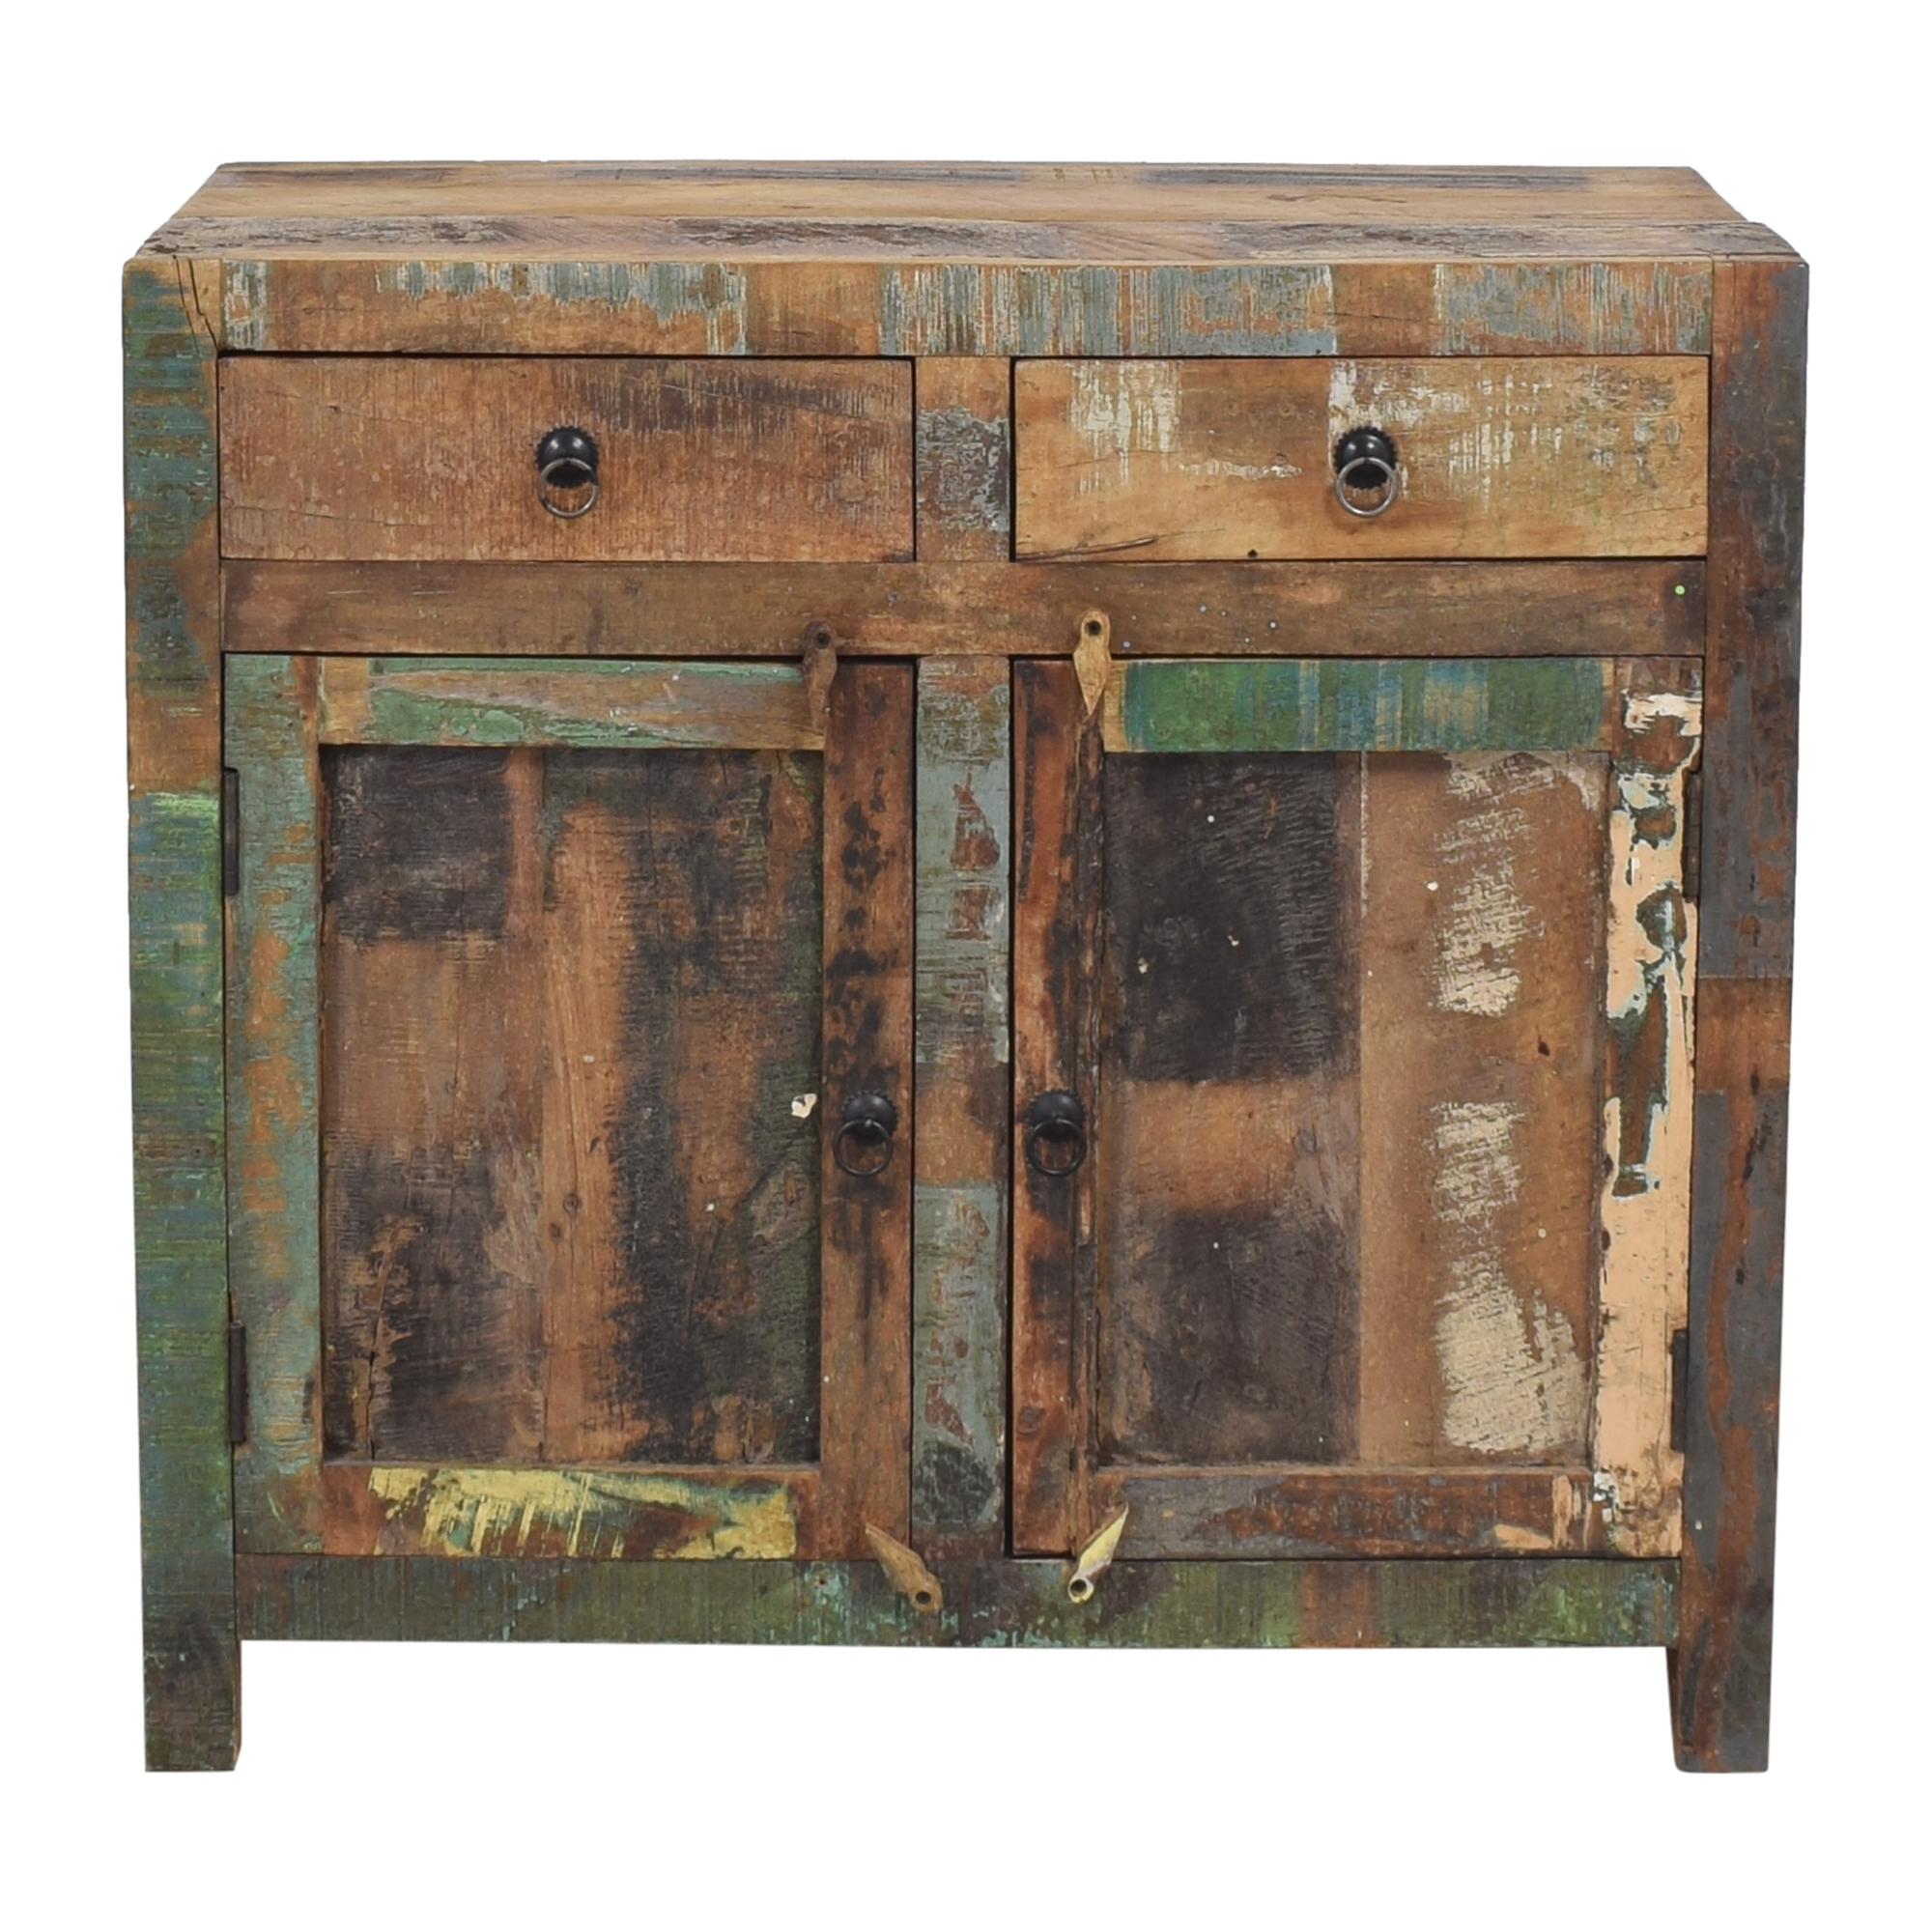 Timbergirl Timbergirl Reclaimed Sideboard Cabinet dimensions